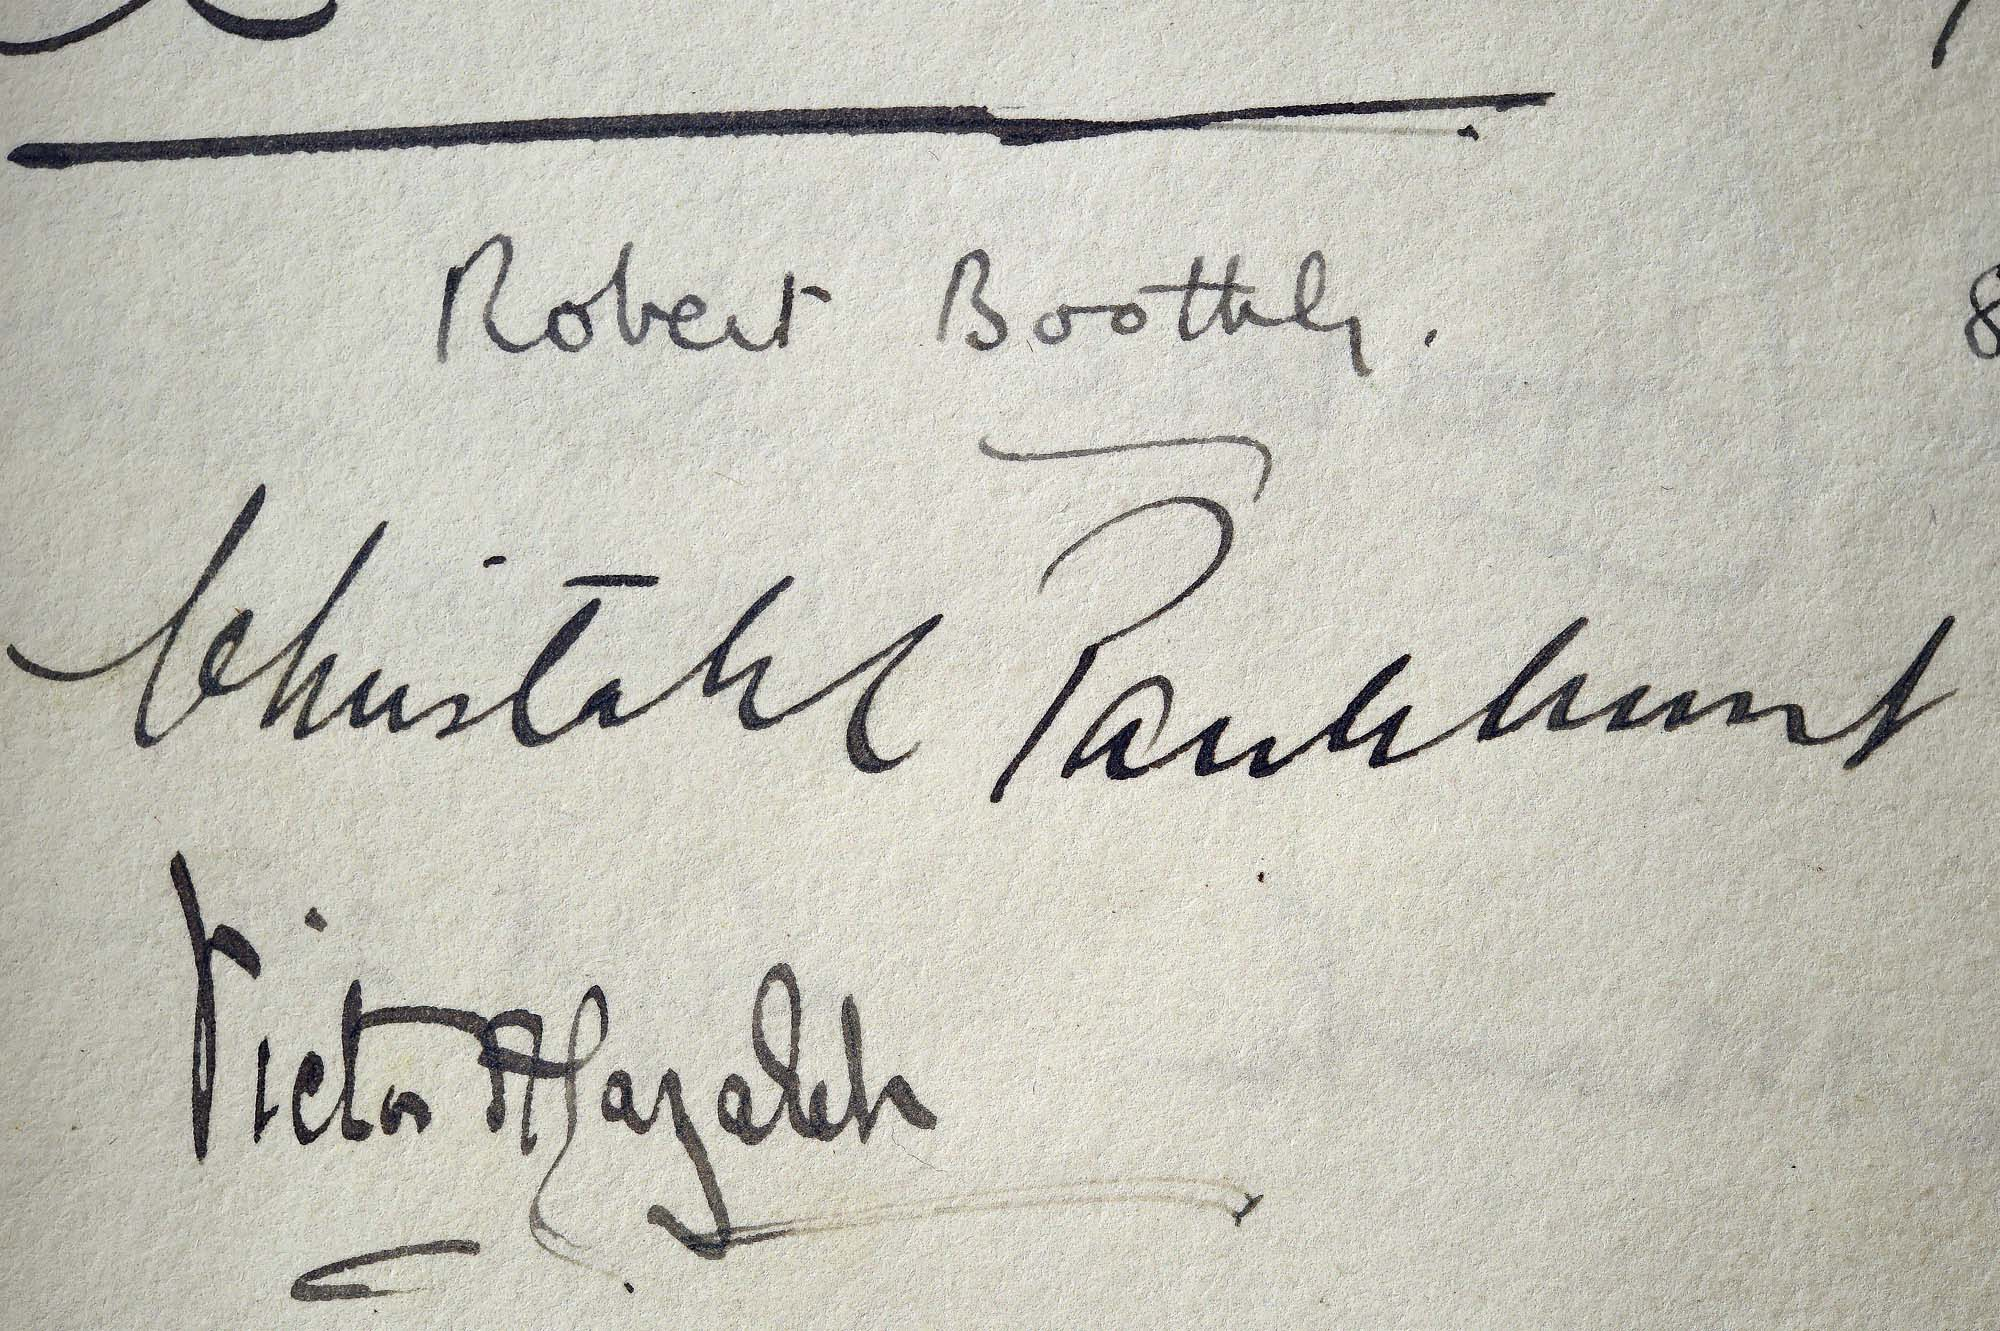 a photo of signatures in a book